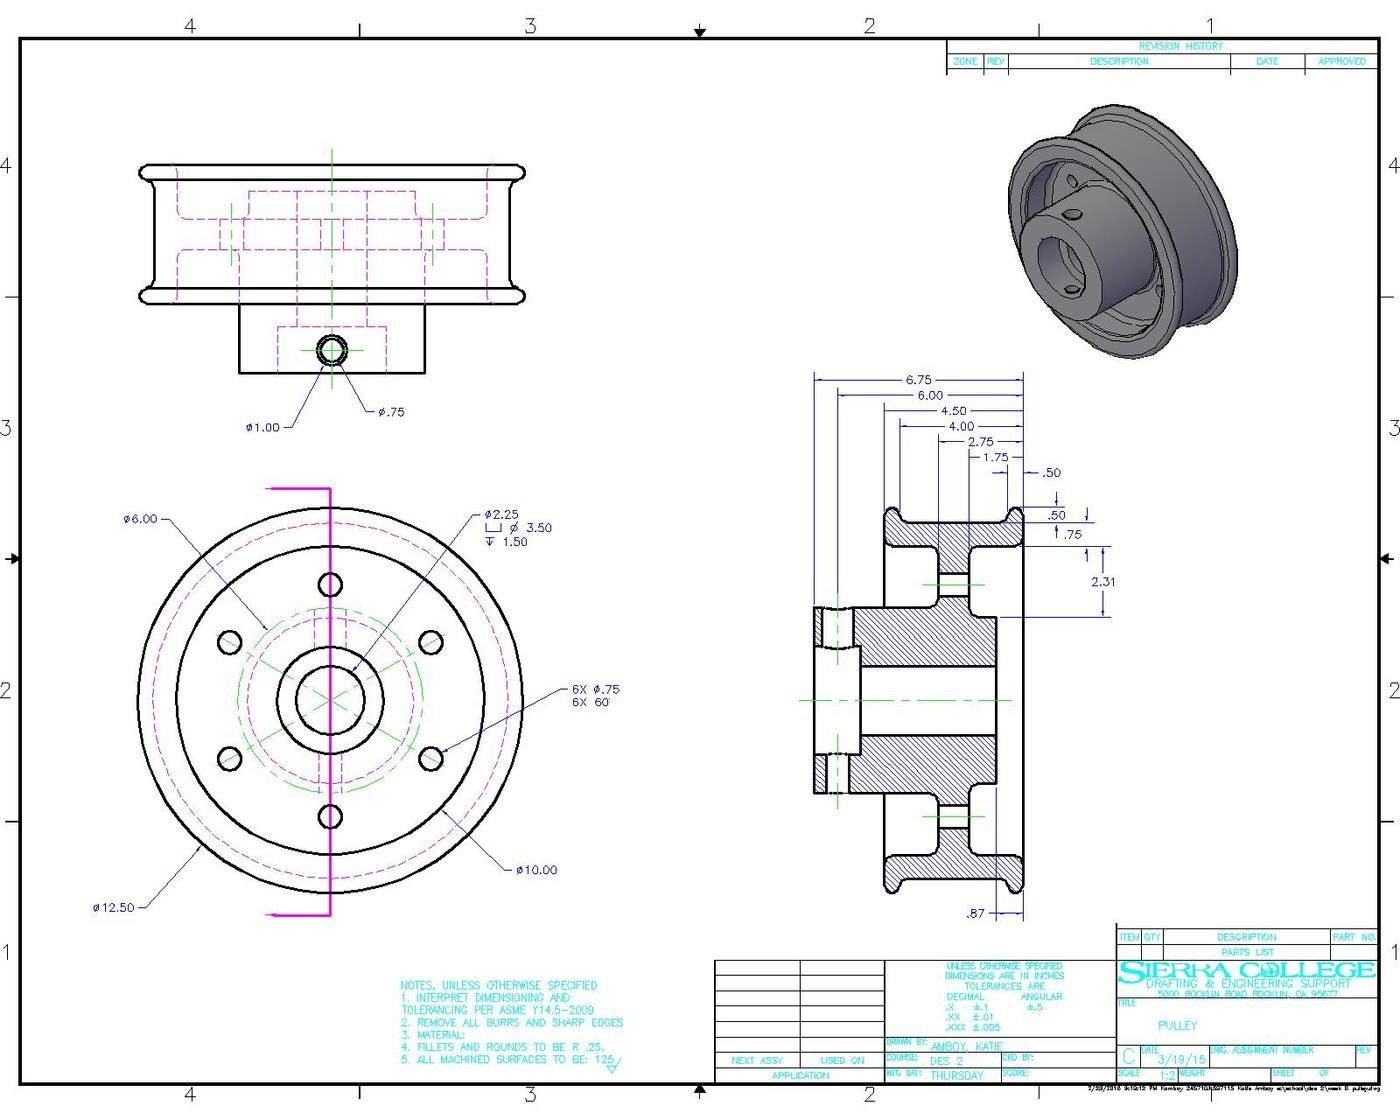 AutoCAD Dimensioned Drawings by Katherine Amboy at